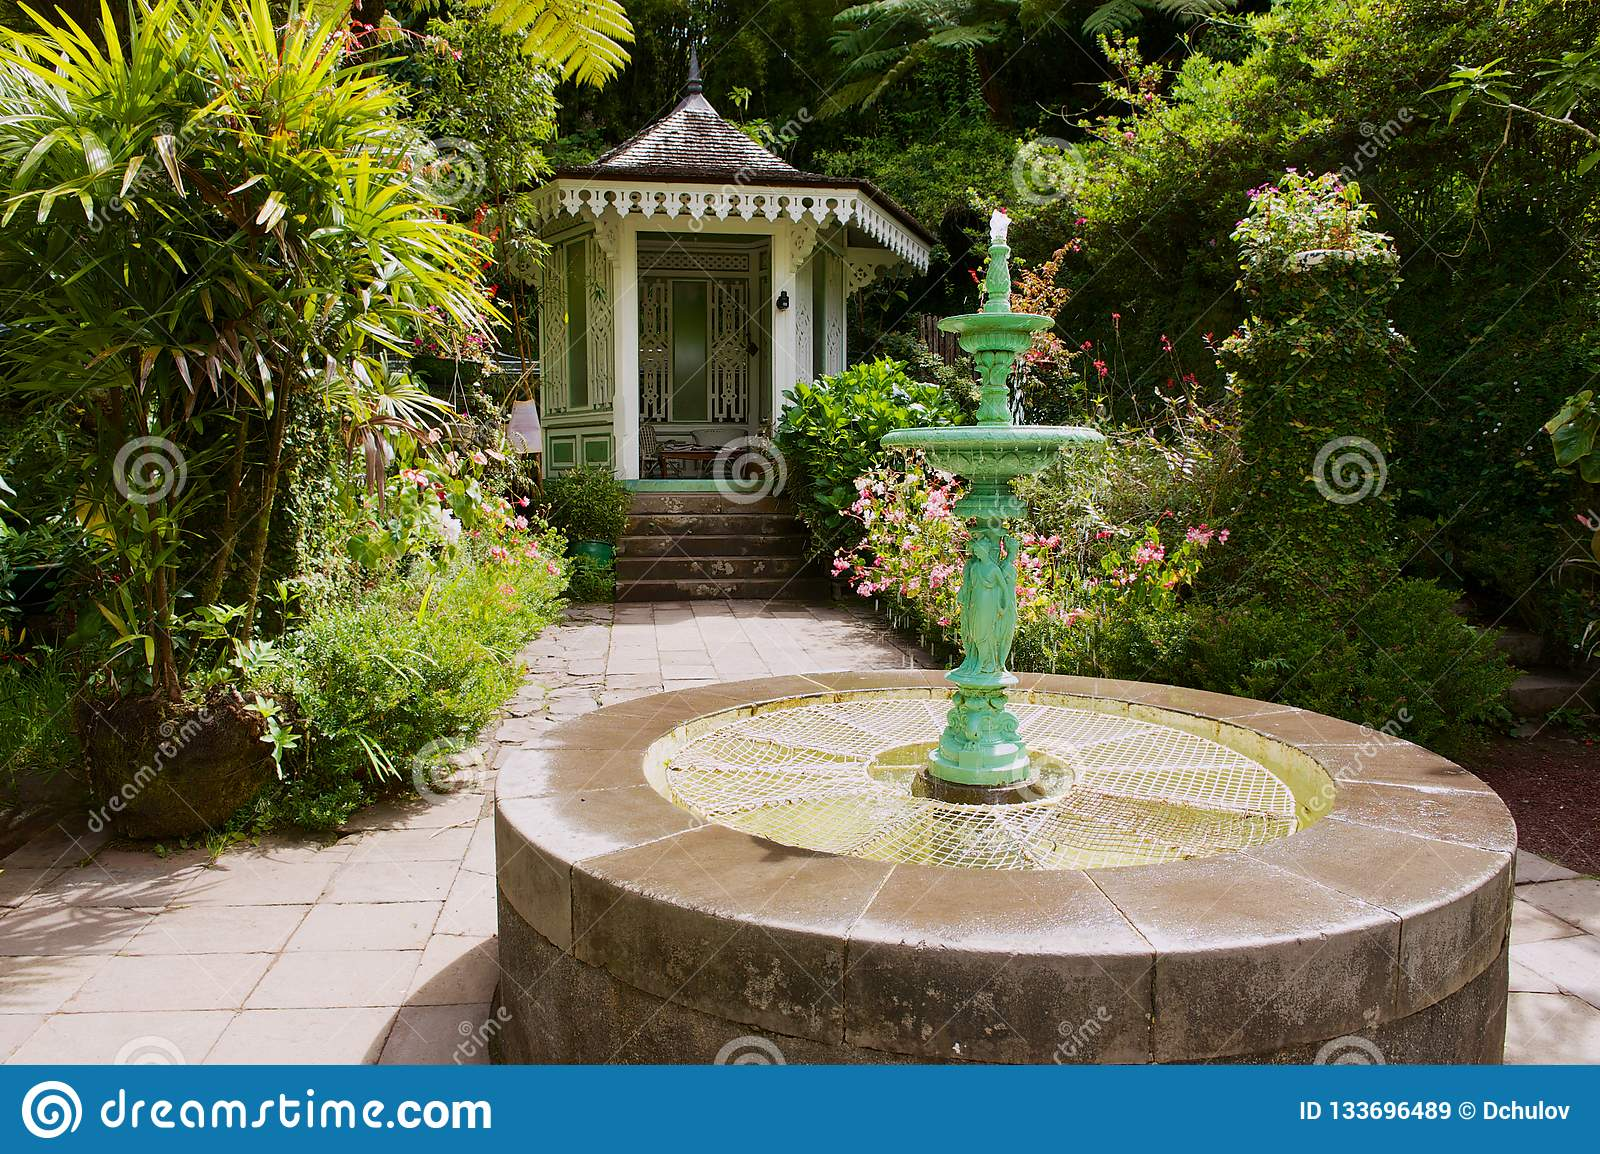 Garden in the oldest colonial estate Maison Folio in Hell-Bourg, Reunion island.